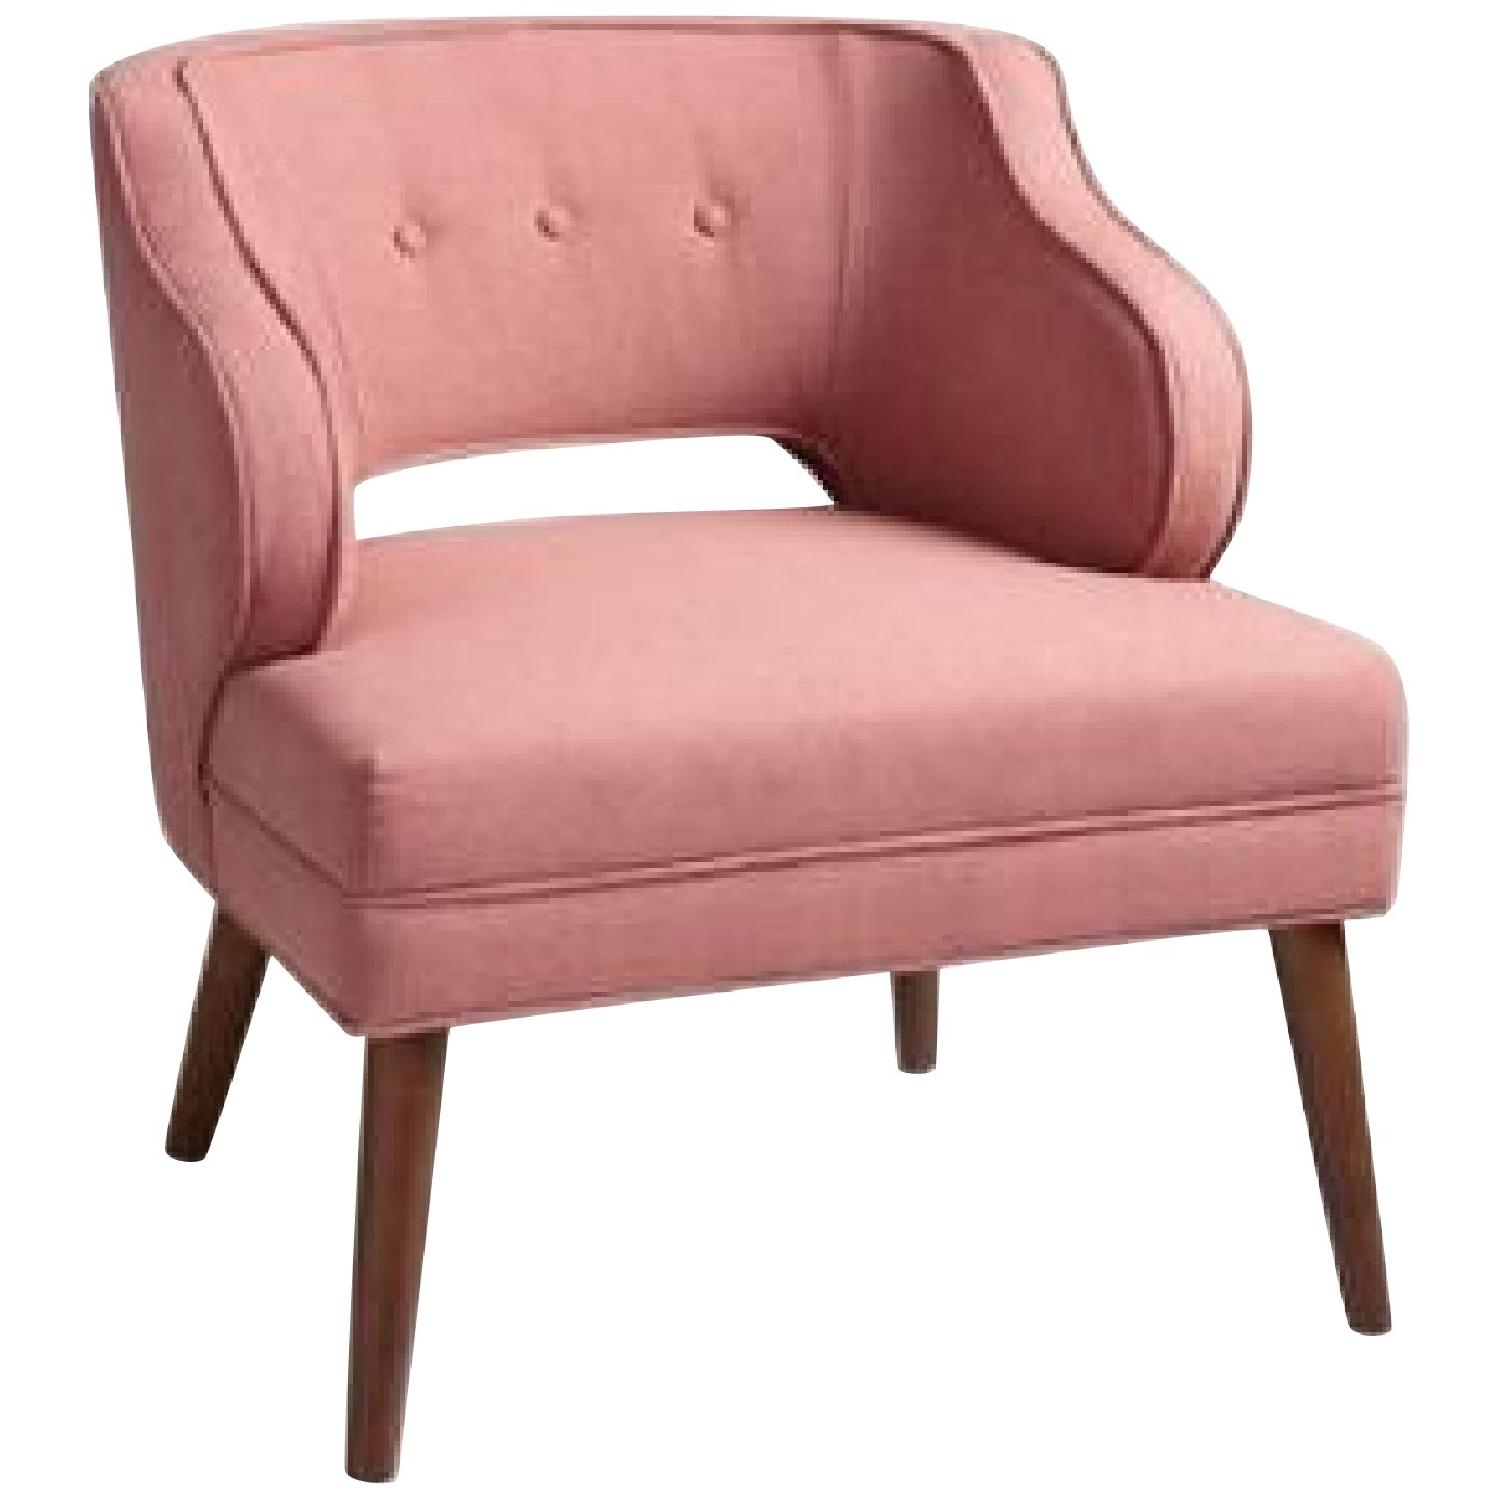 World Market Rose Pink Tyley Upholstered Chair - image-0